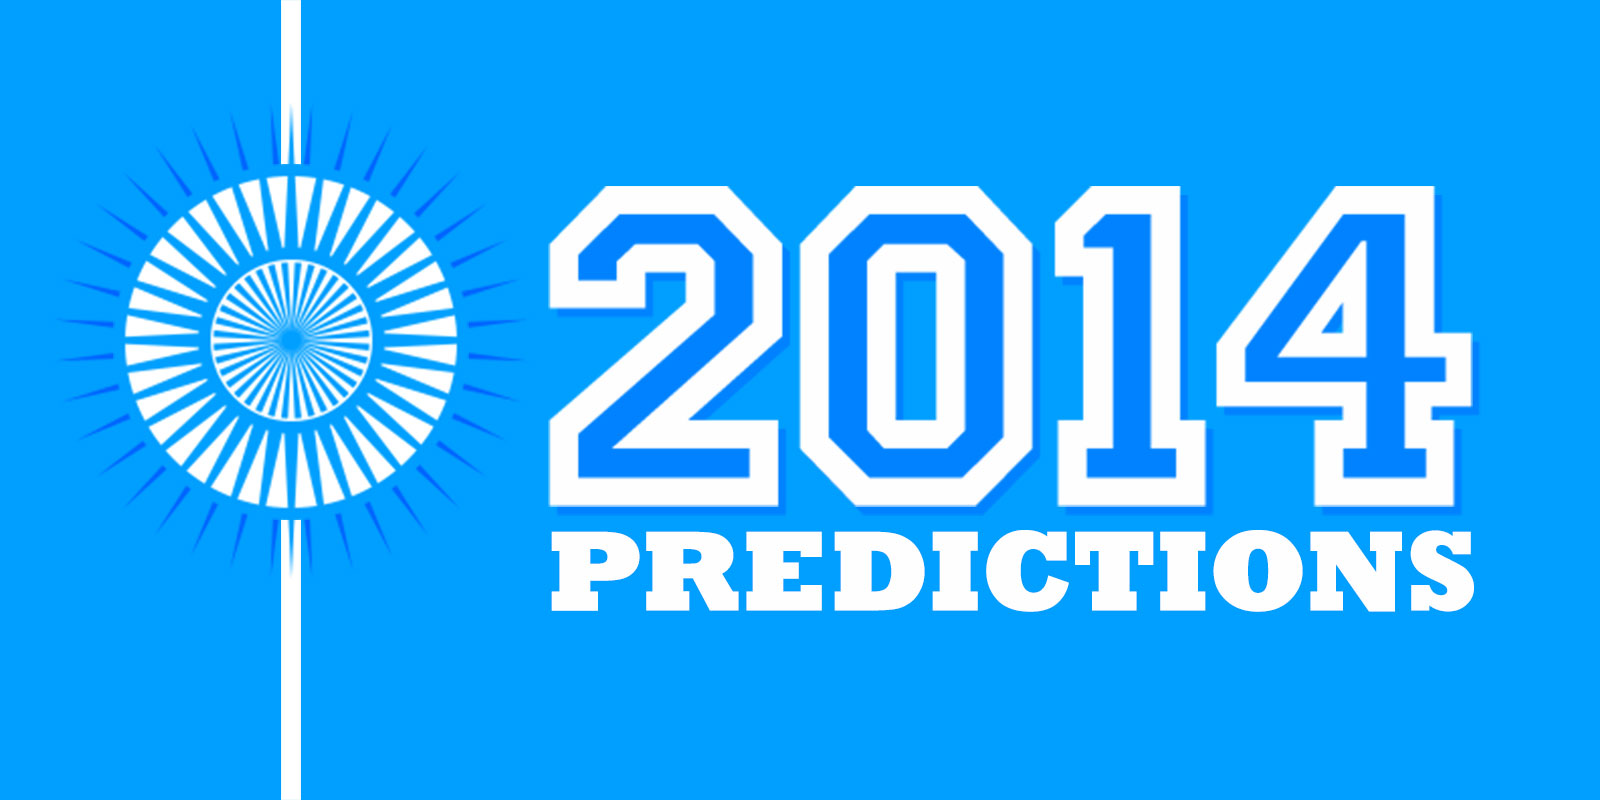 2014 Web Predictions